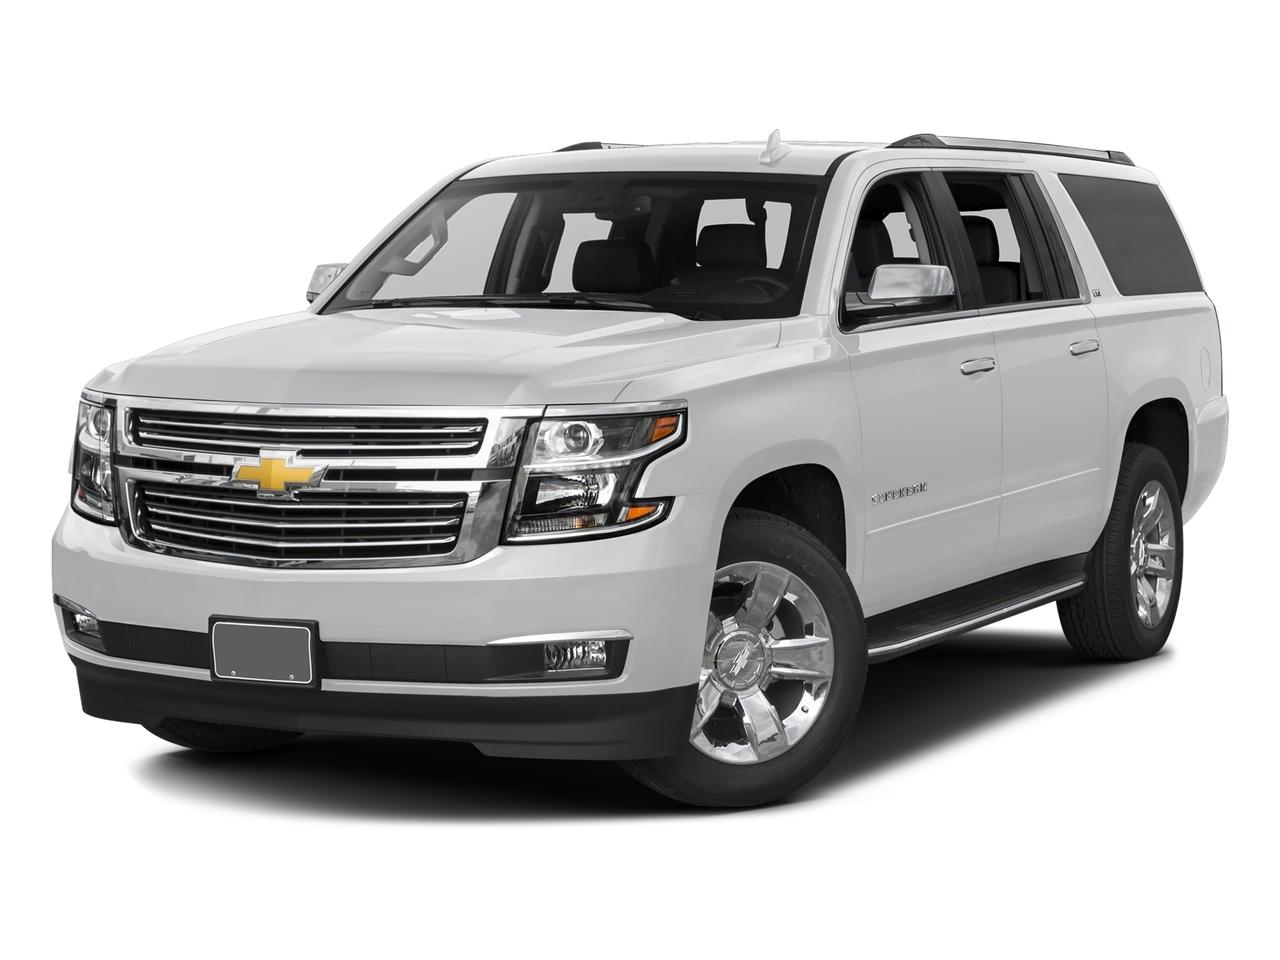 2016 Chevrolet Suburban Vehicle Photo in West Chester, PA 19382